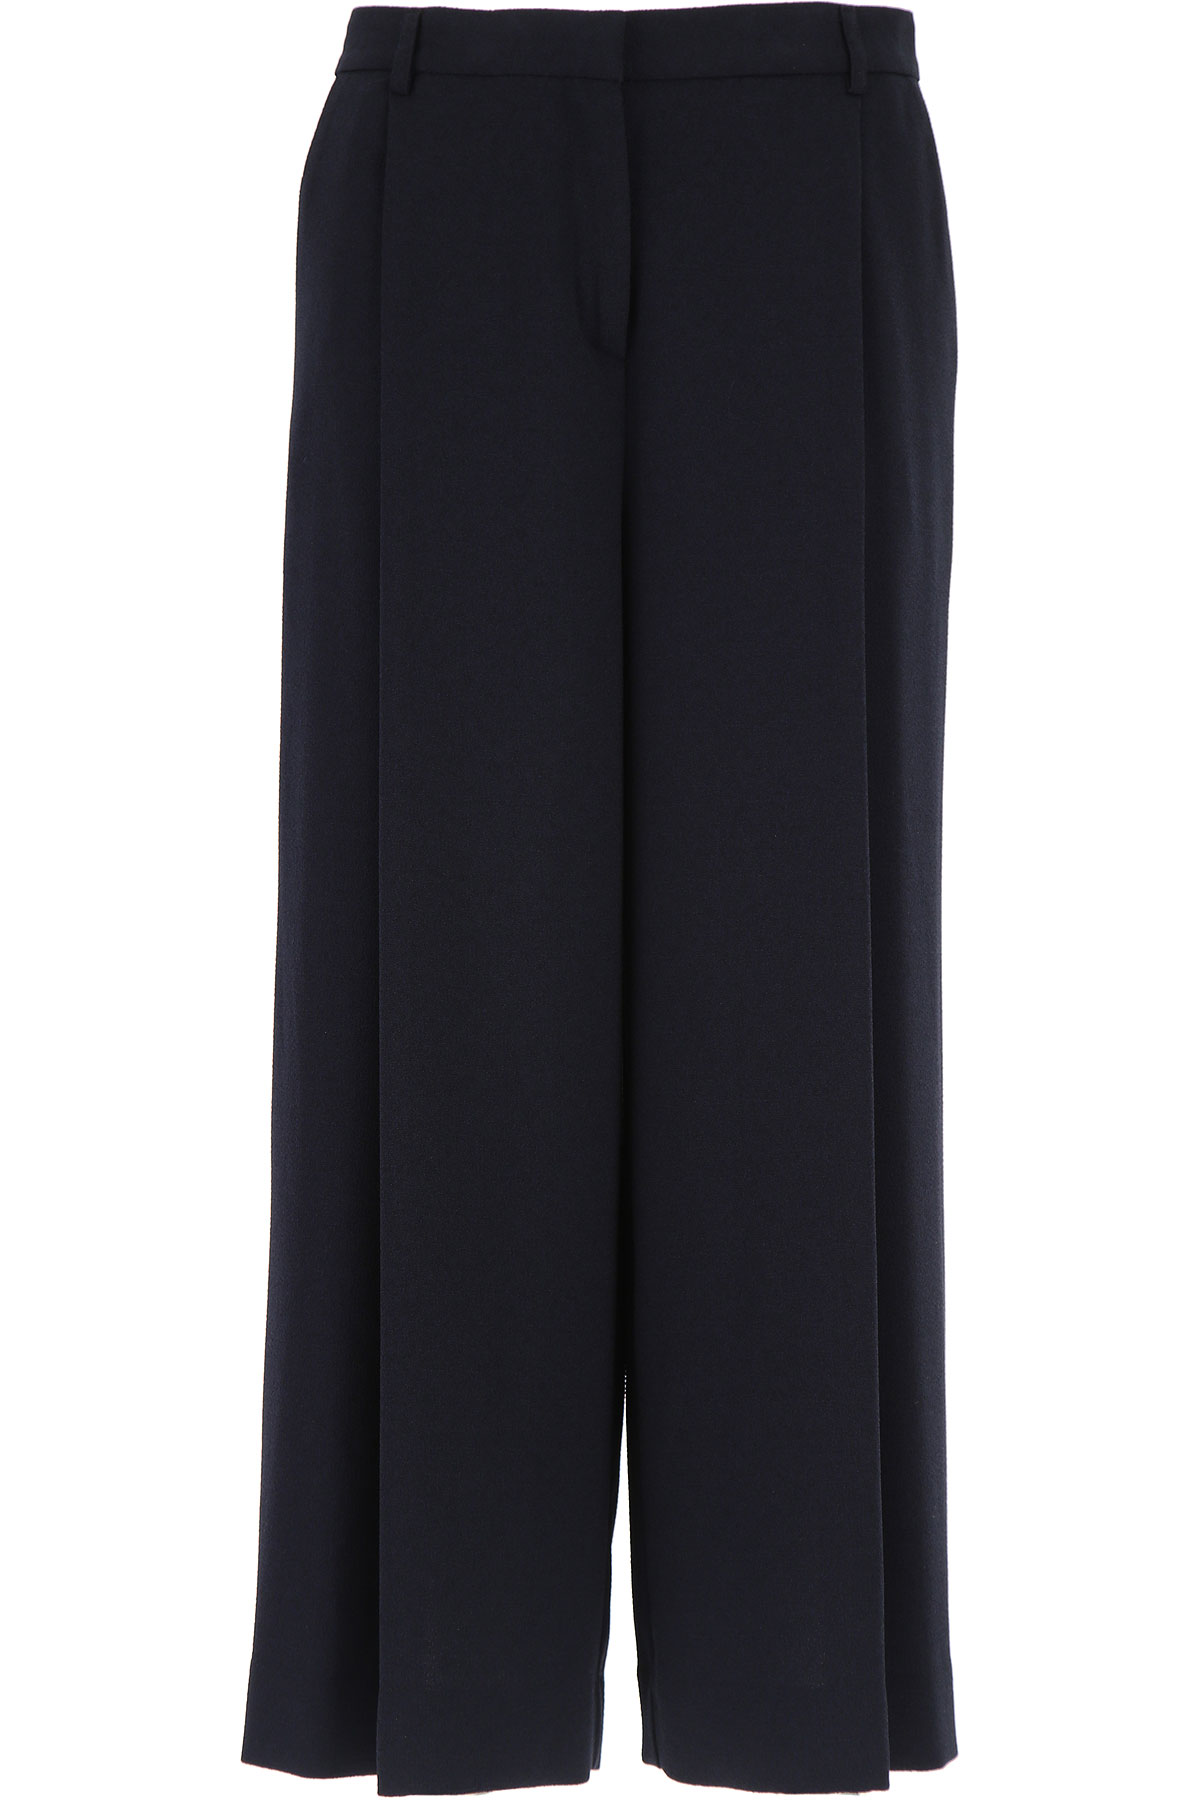 Image of Ottodame Pants for Women On Sale, Blue, polyester, 2017, US 6 - I 42 - GB 10 - F 38 US 8 - I 44 - GB 12 - F 40